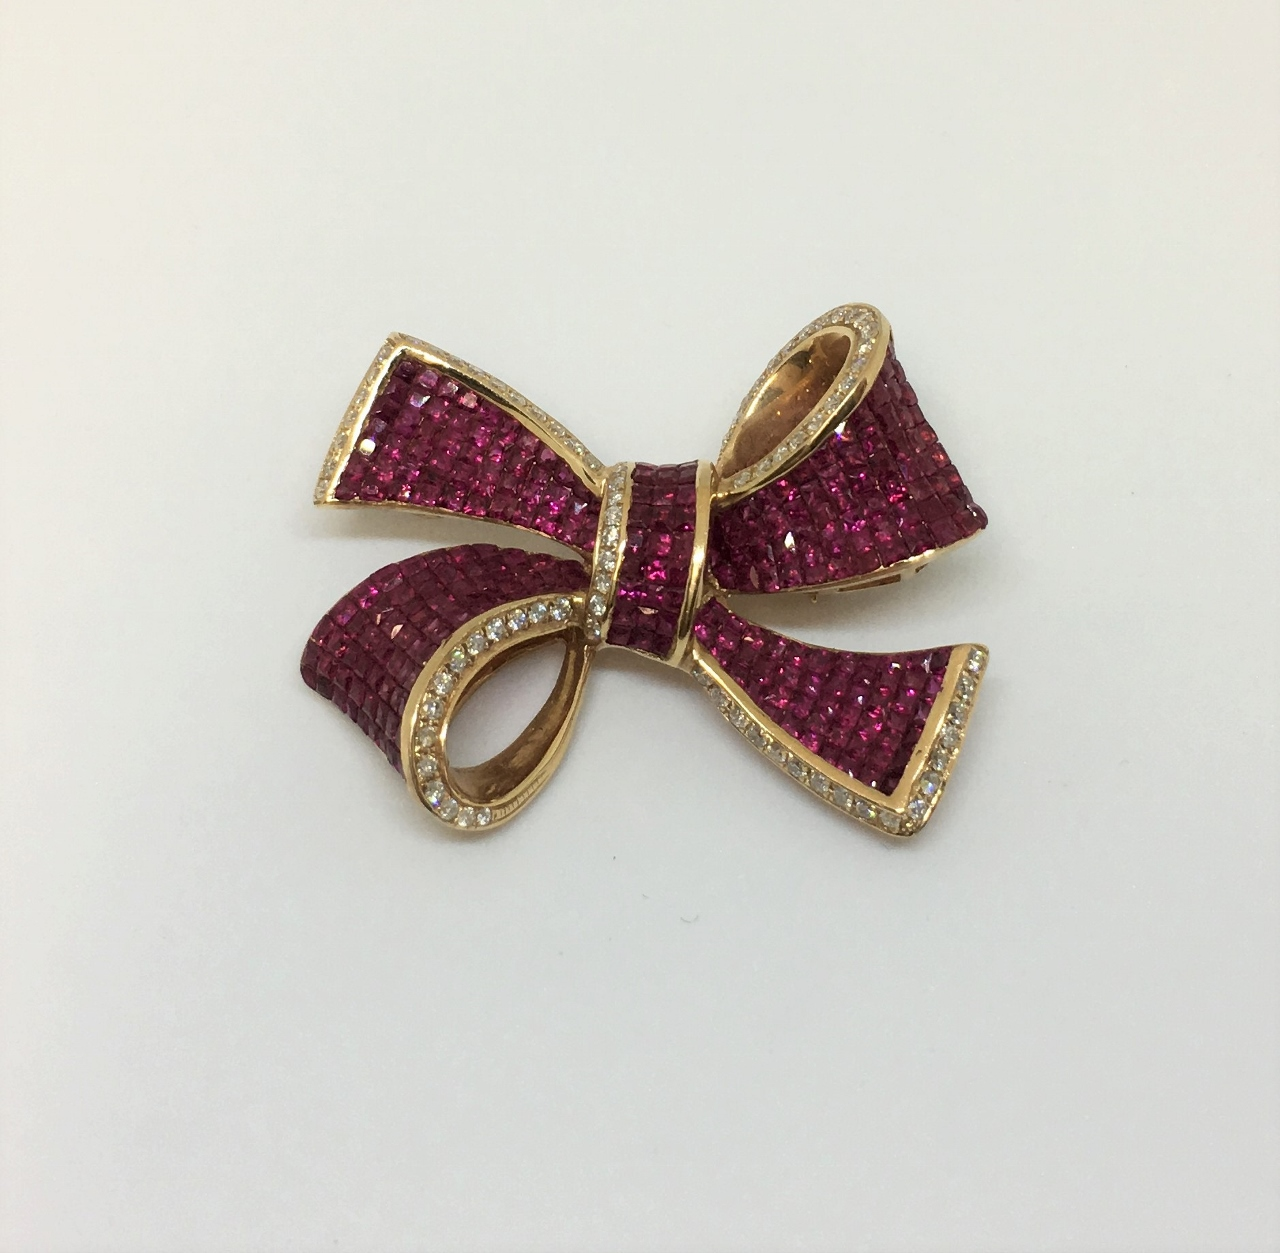 Rose Gold Bow Design Ruby Pendant Brooch